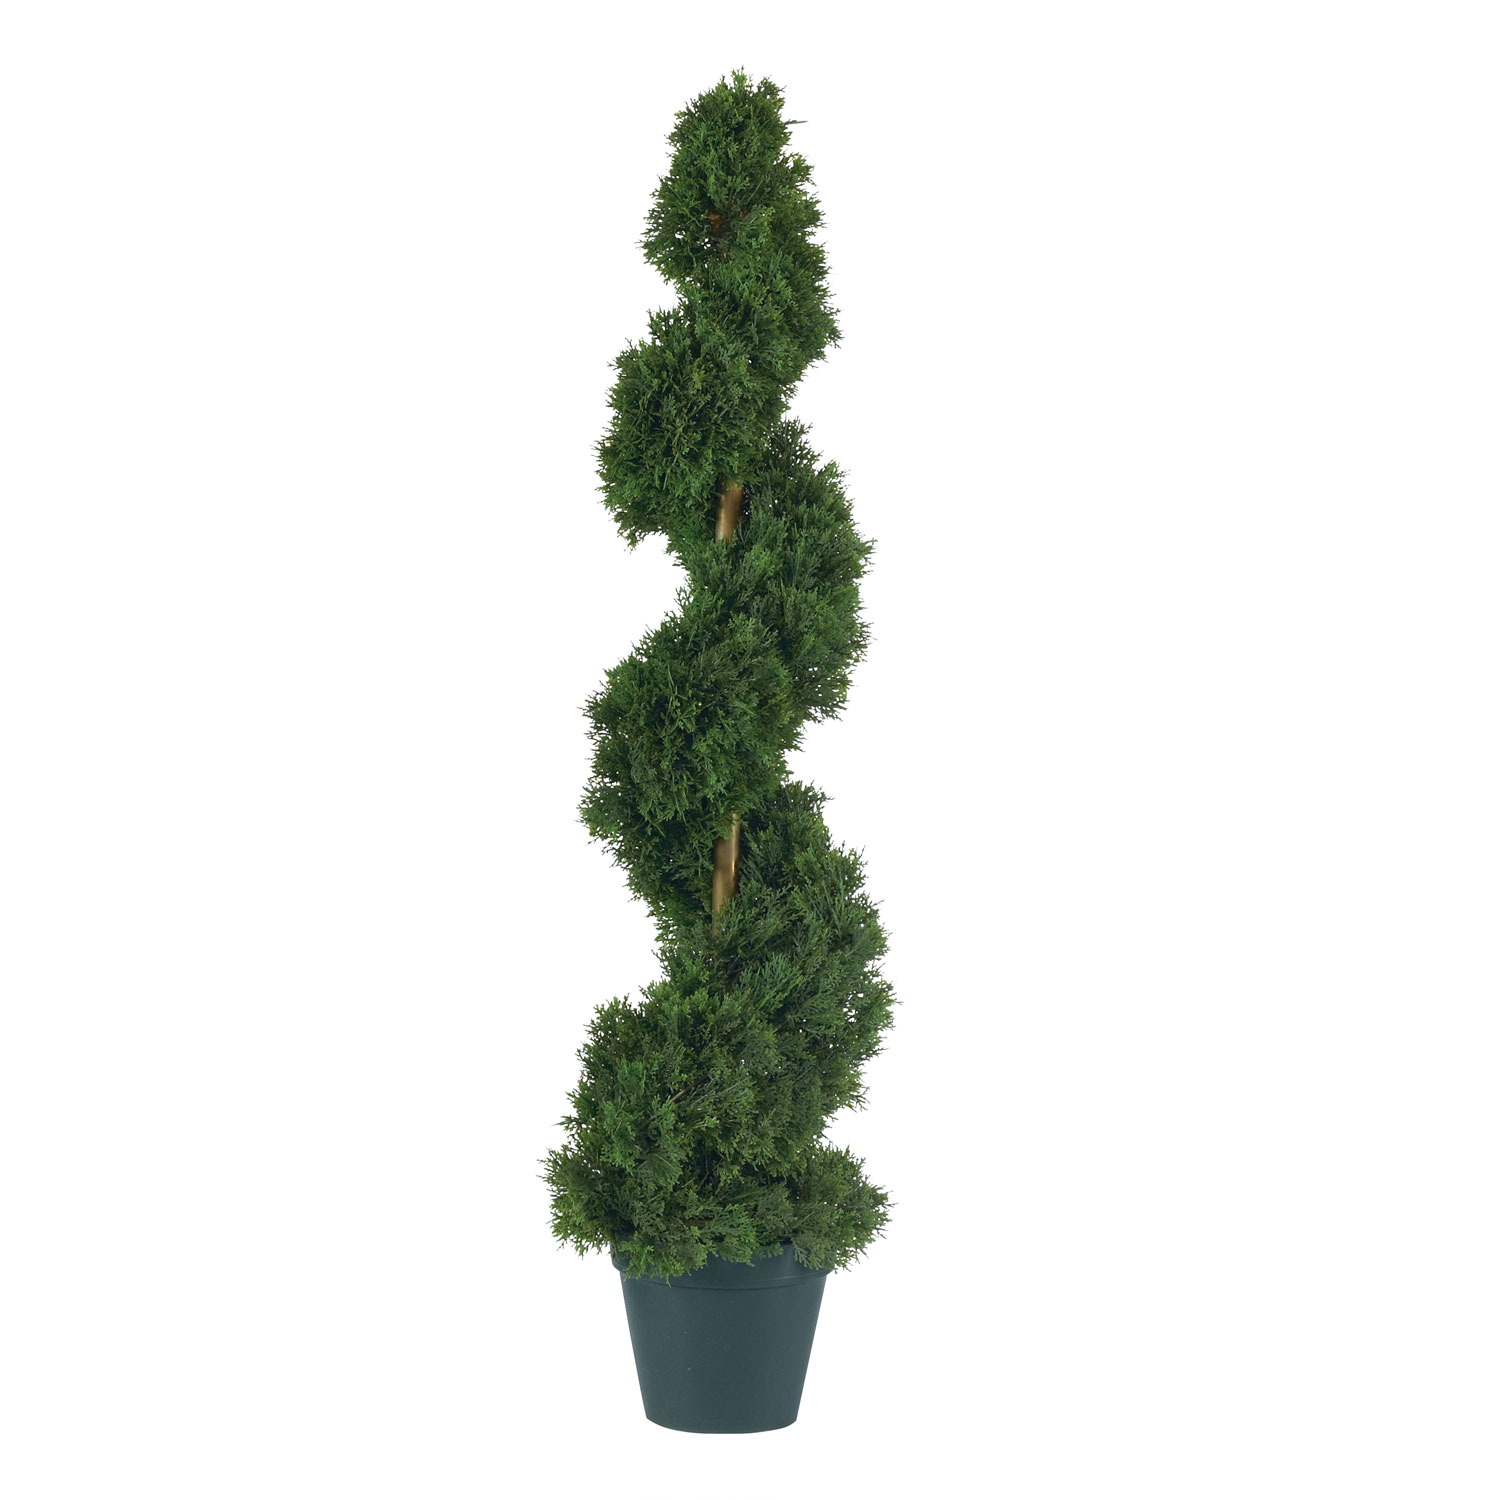 Artificial Christmas Trees Walmart